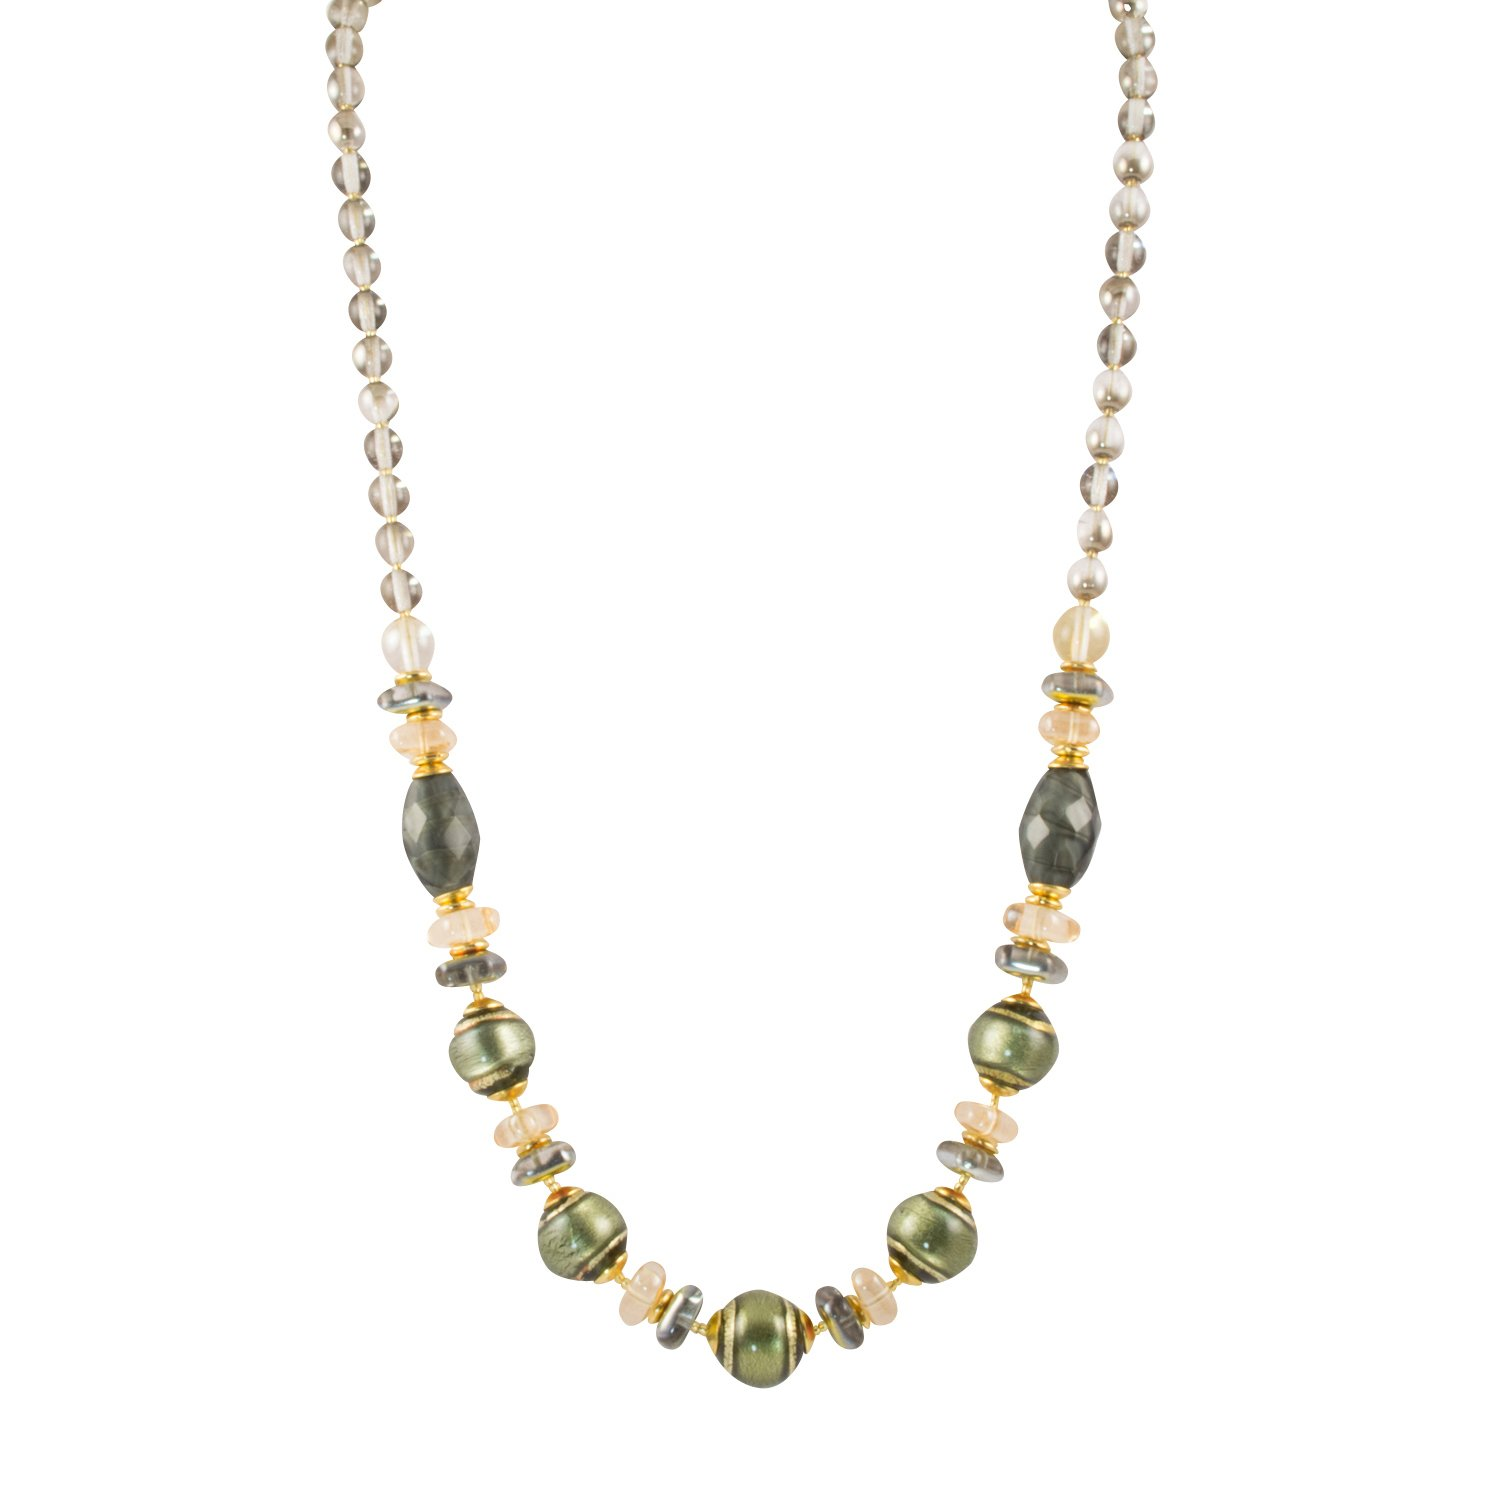 Murano di Susanne ''Verona'' 22k Gold Plated Murano Green and Gold Foil Glass Bead Necklace, 19+2'' Ext.